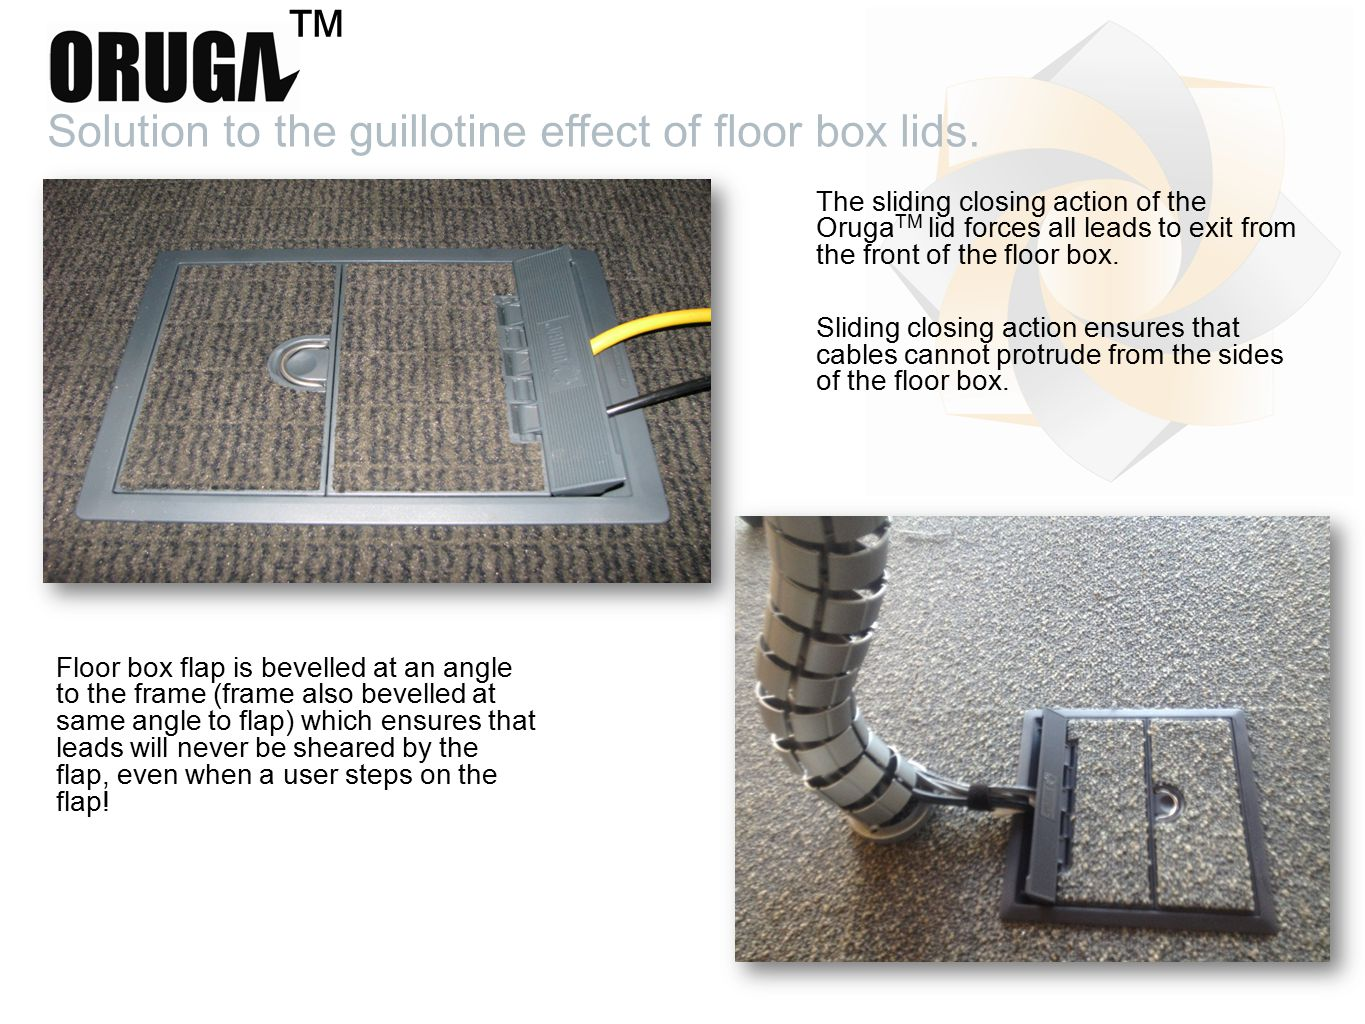 The sliding closing action of the Oruga TM lid forces all leads to exit from the front of the floor box.